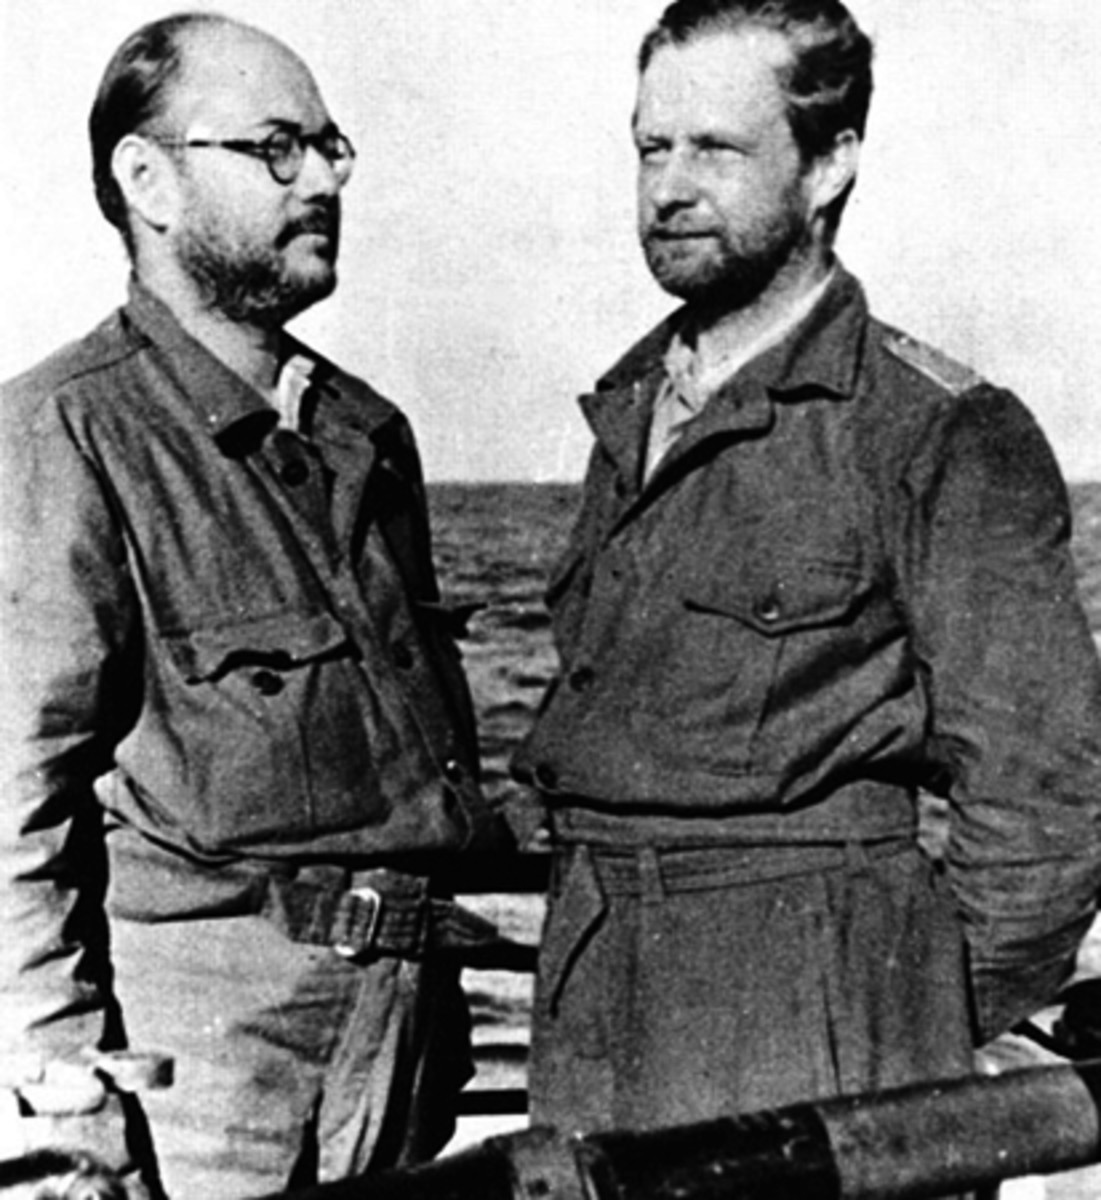 Subhash Chandra Bose and Captain Werner Musenberg on the deck of U-180 submarine